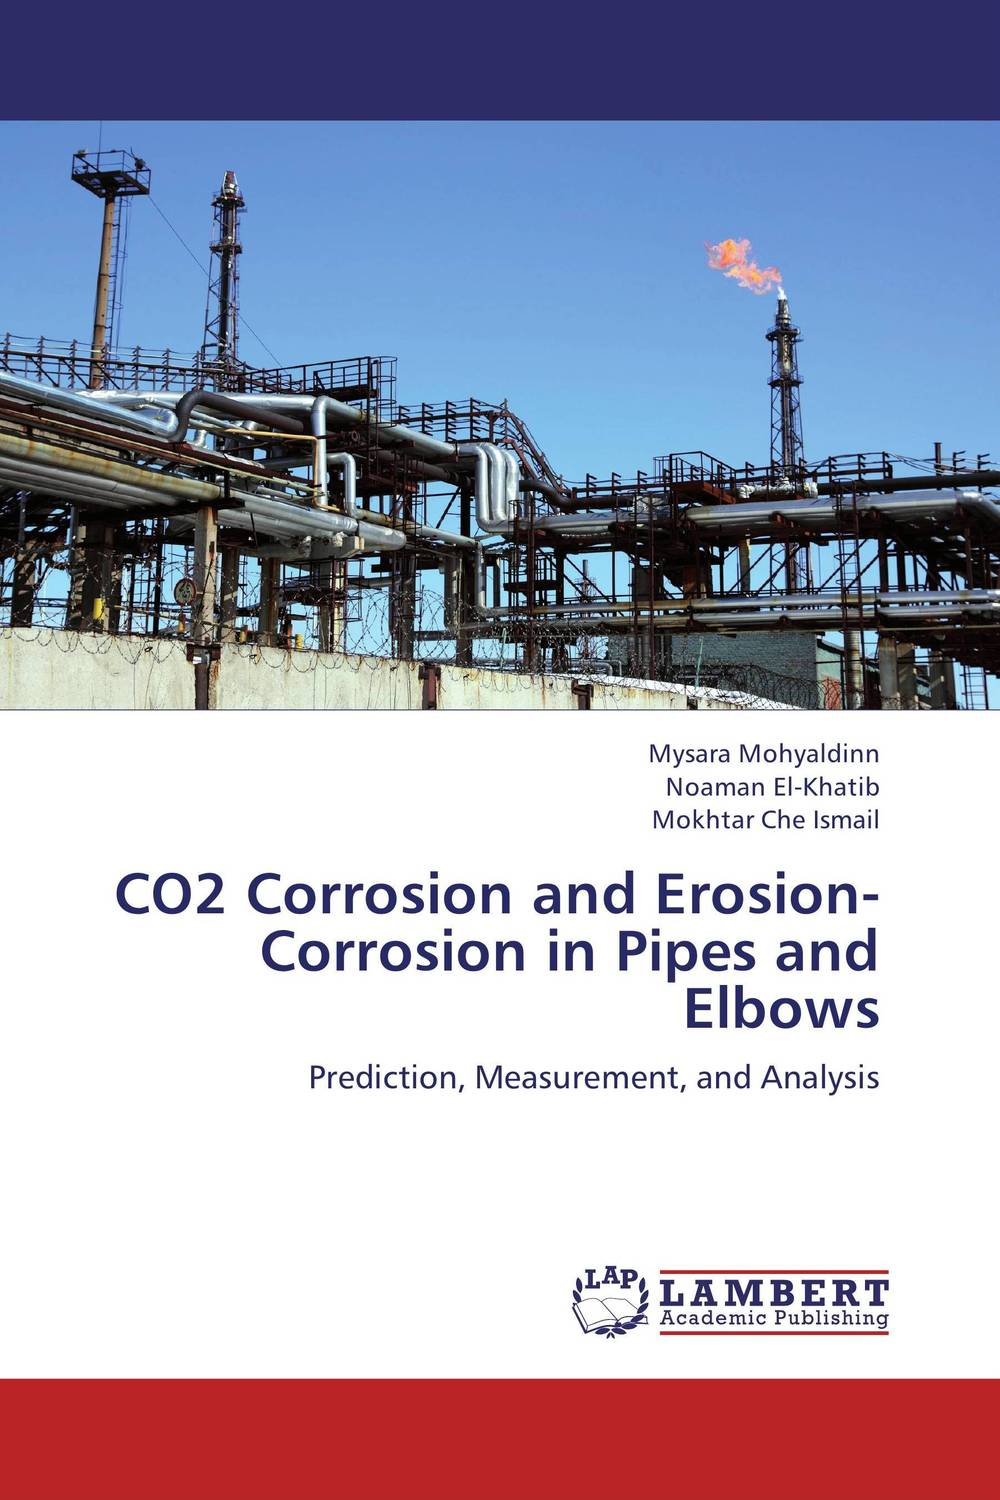 CO2 Corrosion and Erosion-Corrosion in Pipes and Elbows